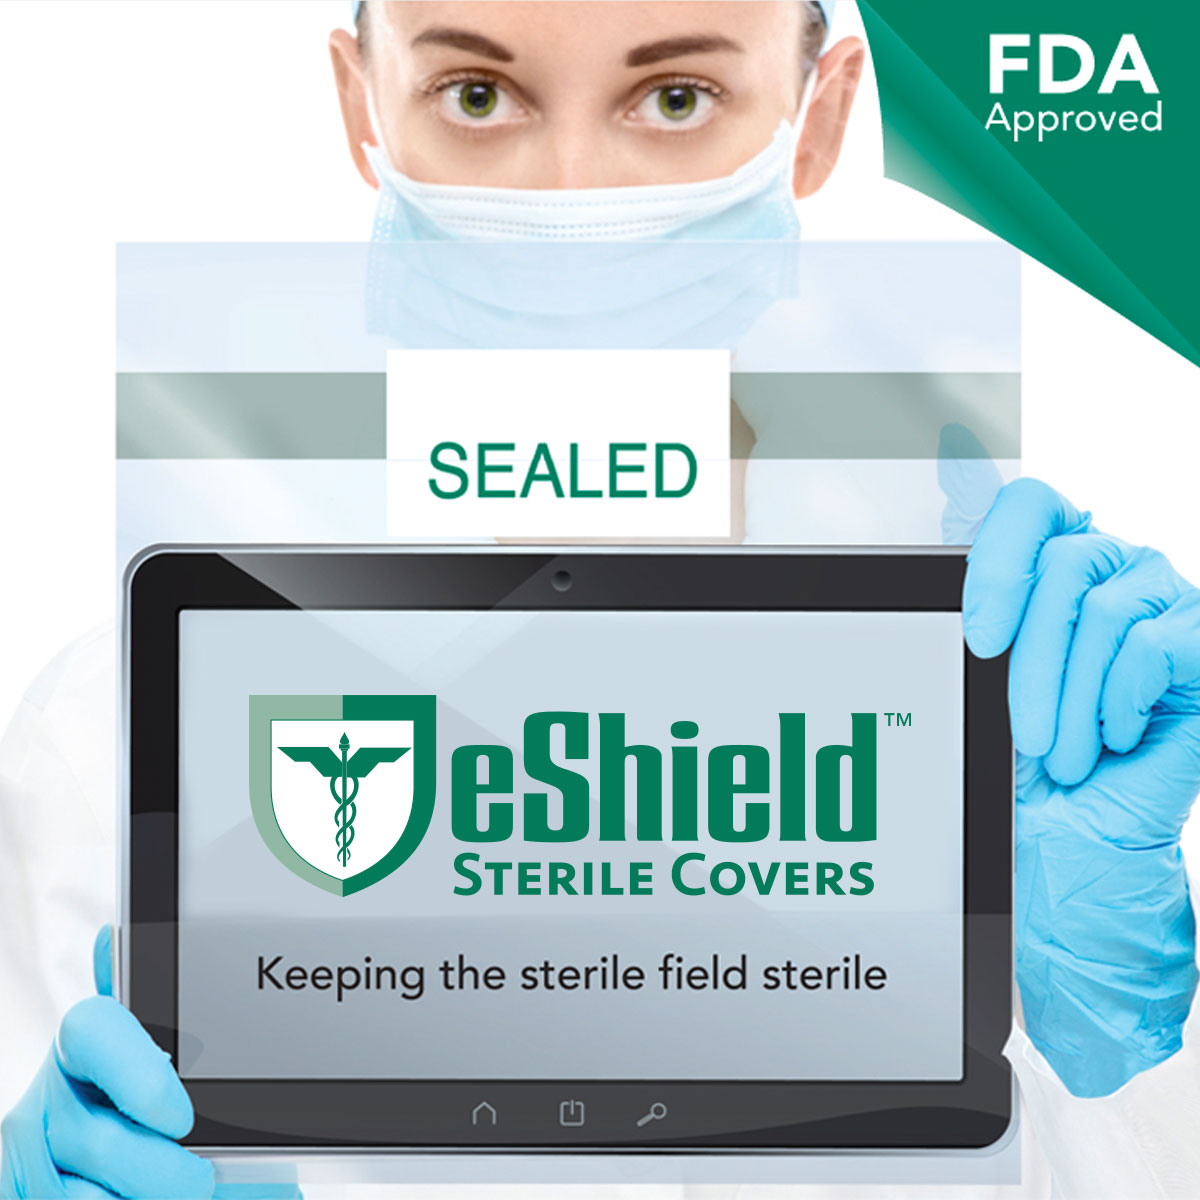 Sterile Electronic Device Handheld Surgical Cover FDA Approved